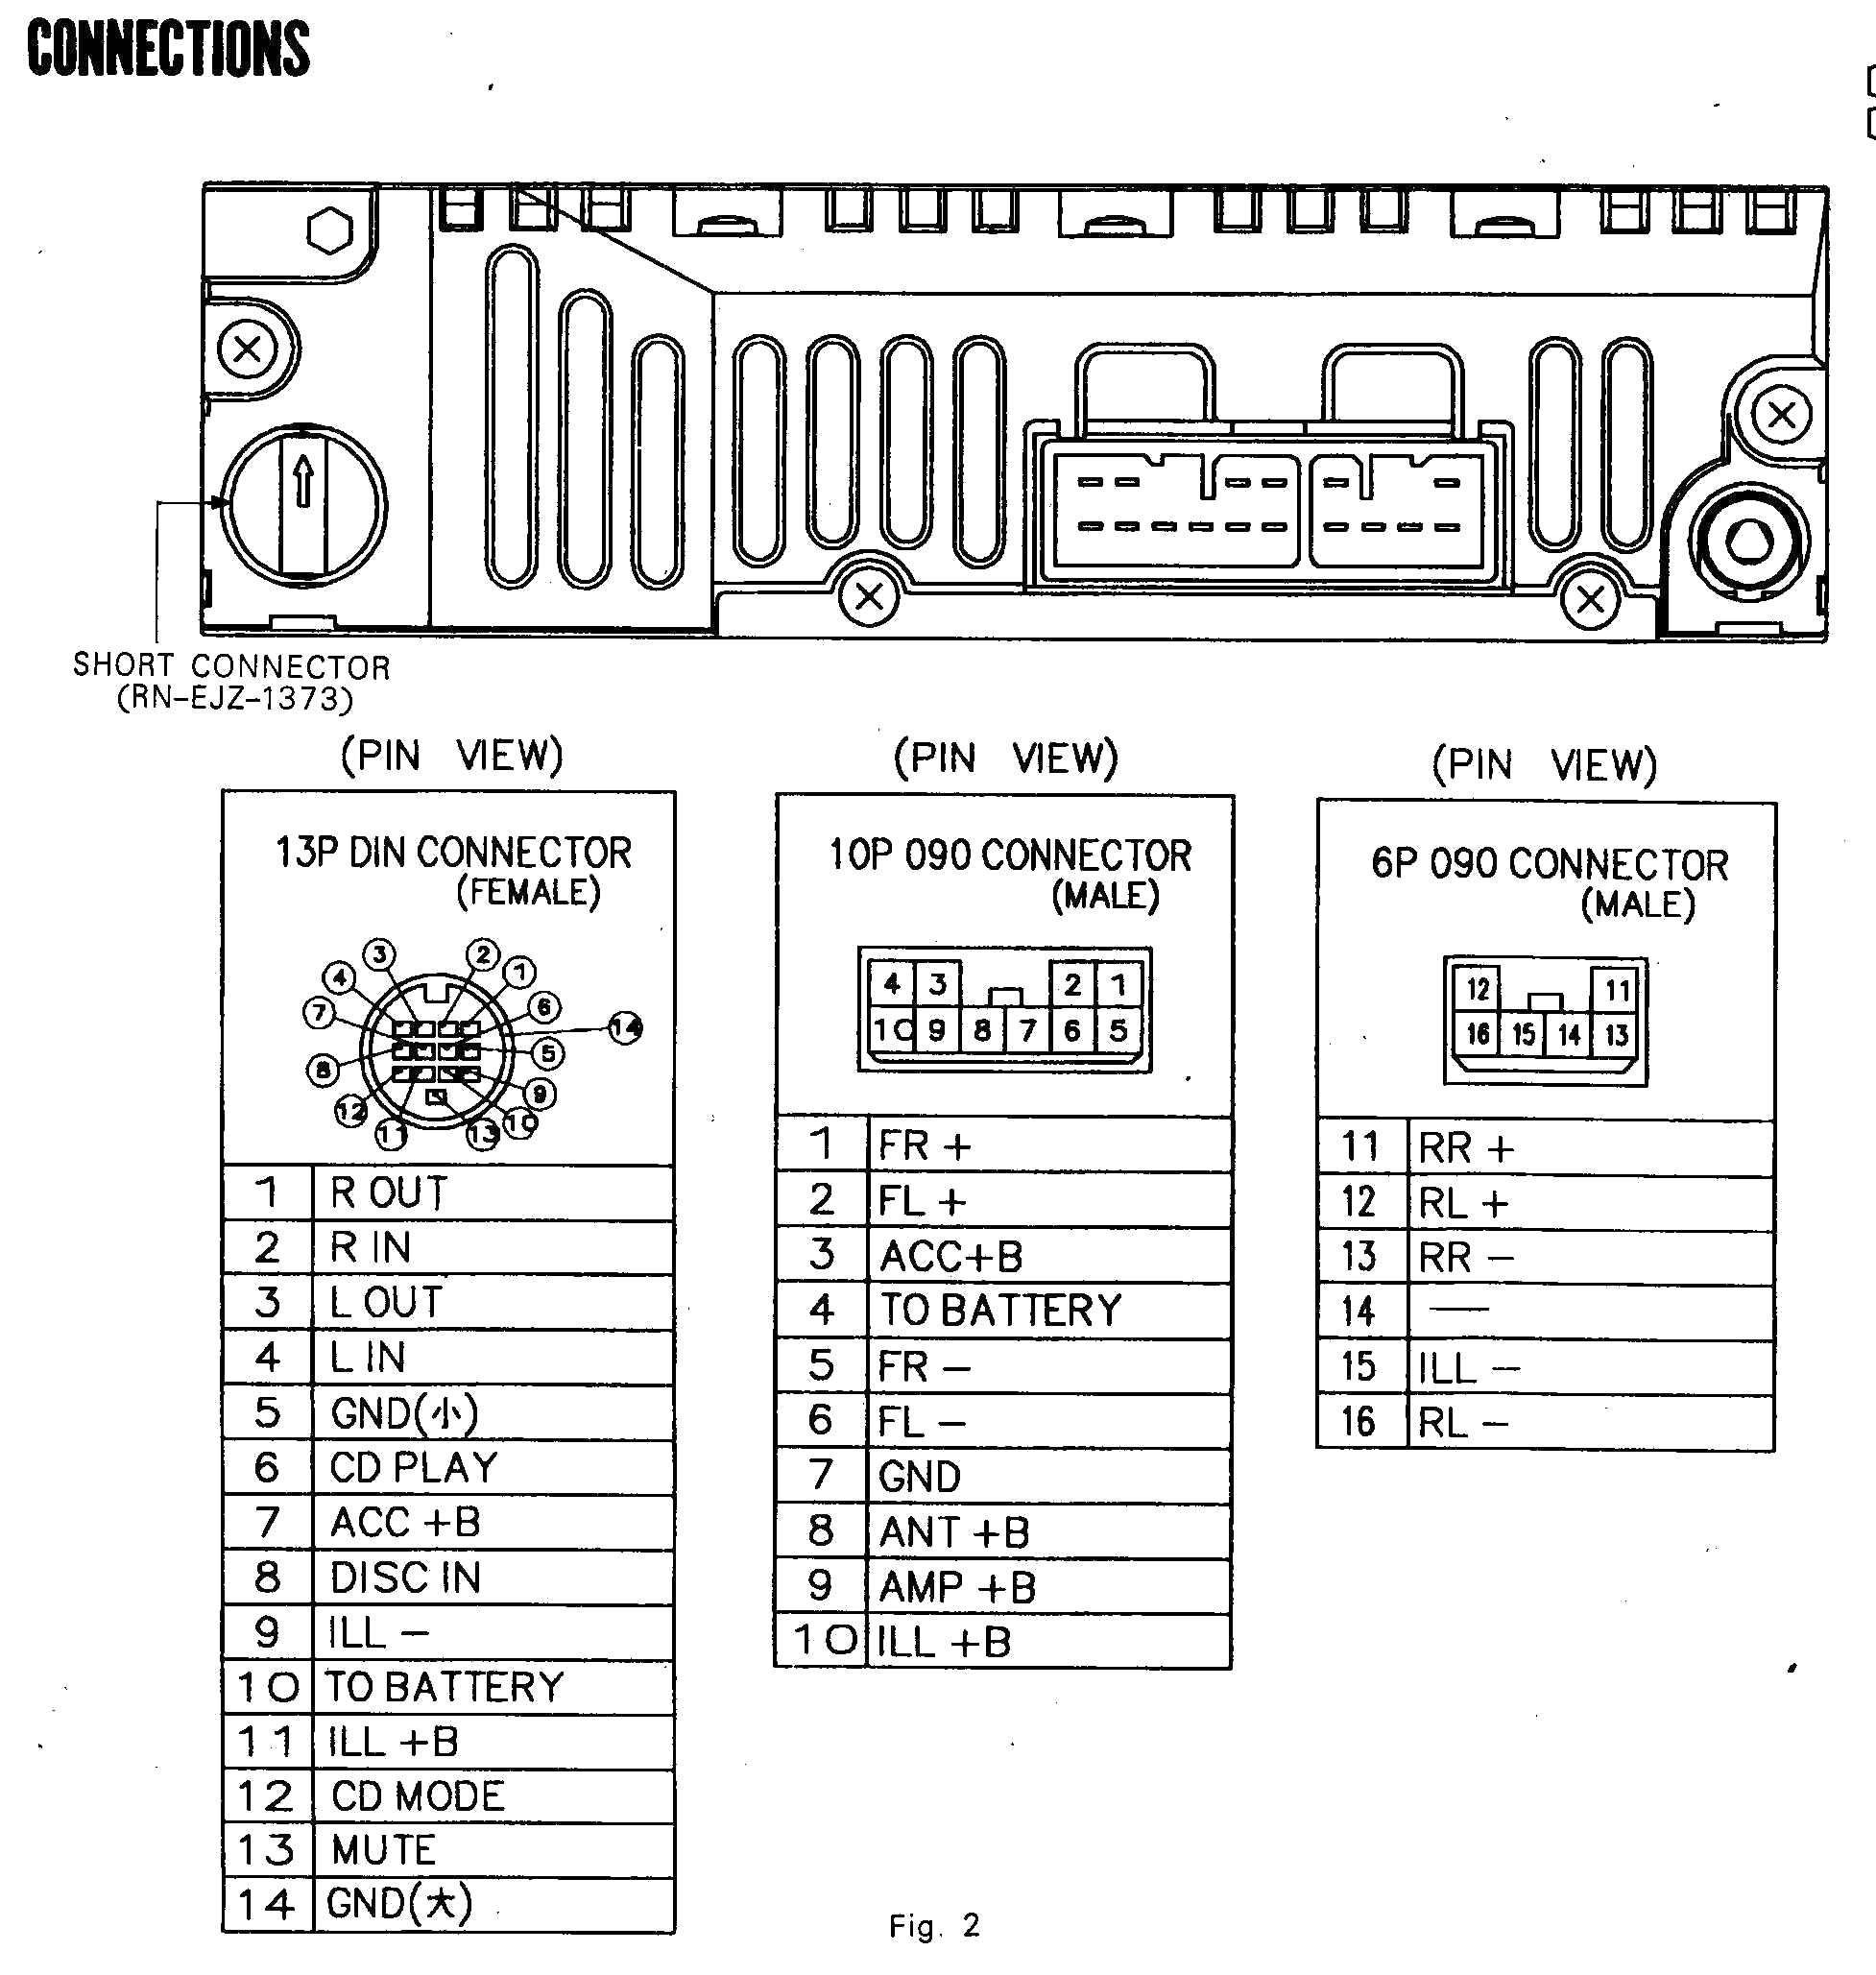 Pioneer Deh 1300Mp Wiring Diagram - Wiring Diagrams - Pioneer Deh 1300Mp Wiring Diagram